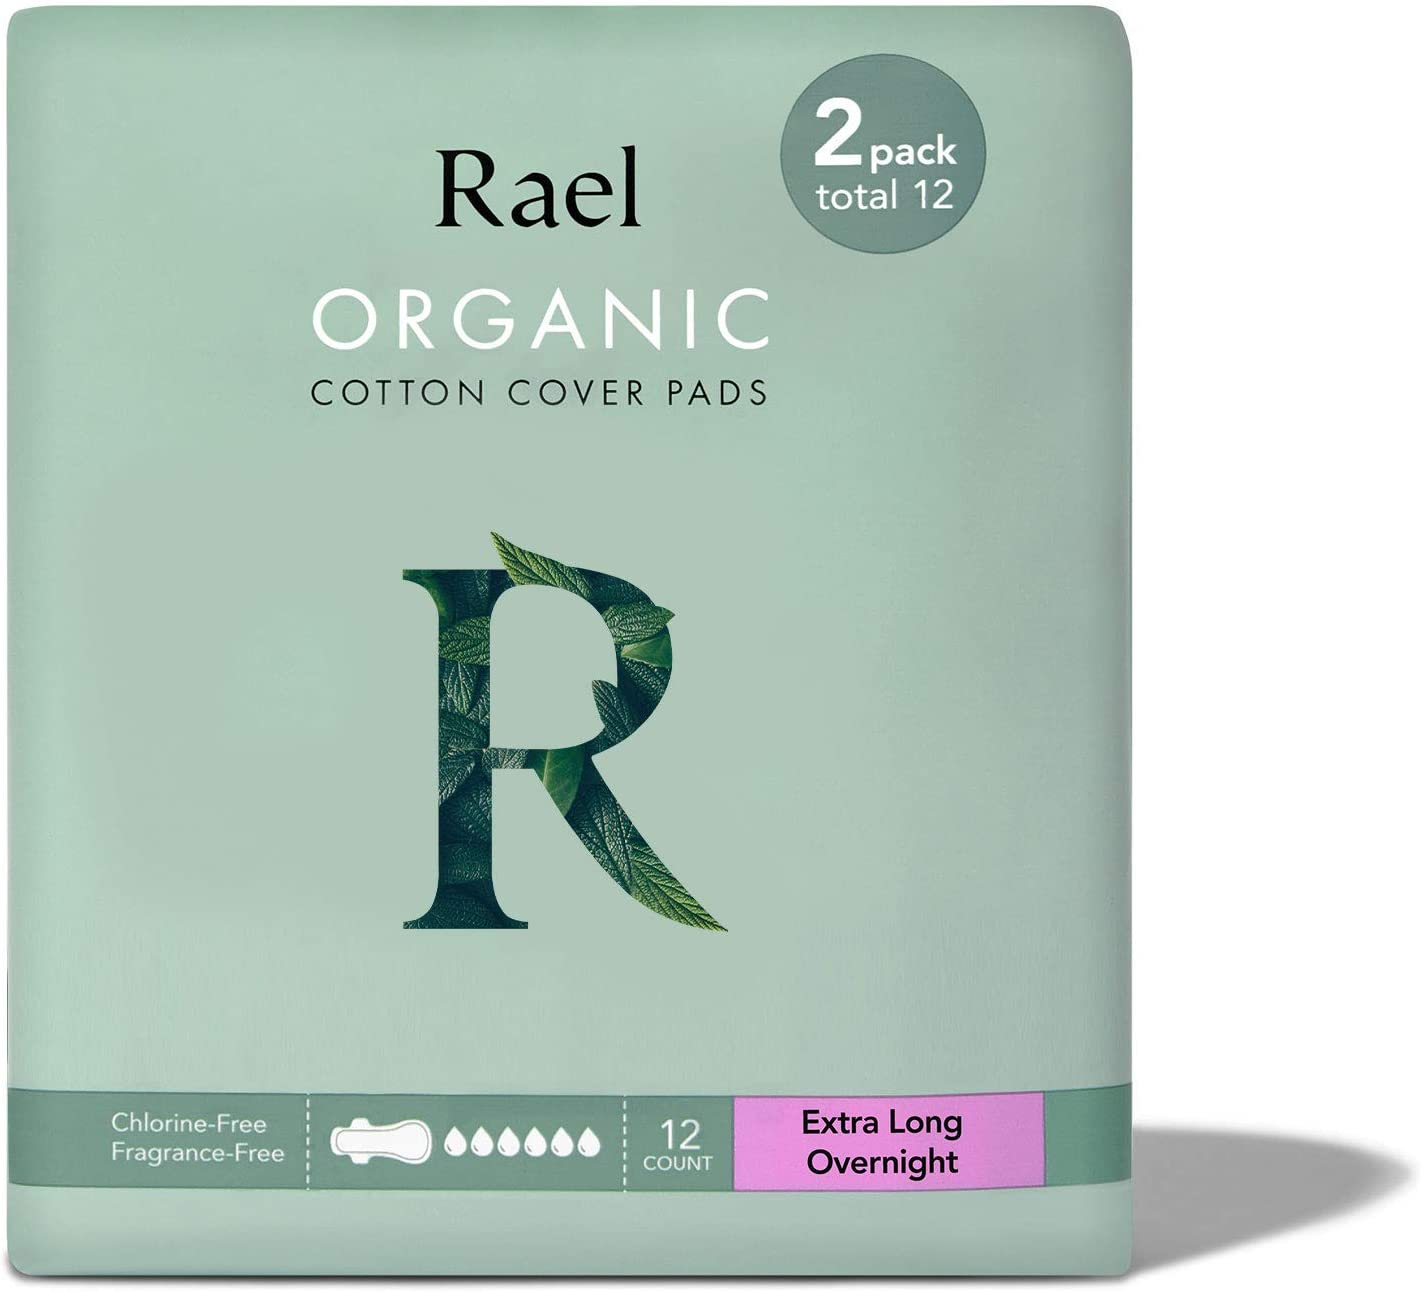 Rael Organic Cotton Sanitary Pads - Extra Long Overnight Size, Heavy Absorbency, Unscented, Ultra Thin Pads for Women, Postpartum (12 Count)